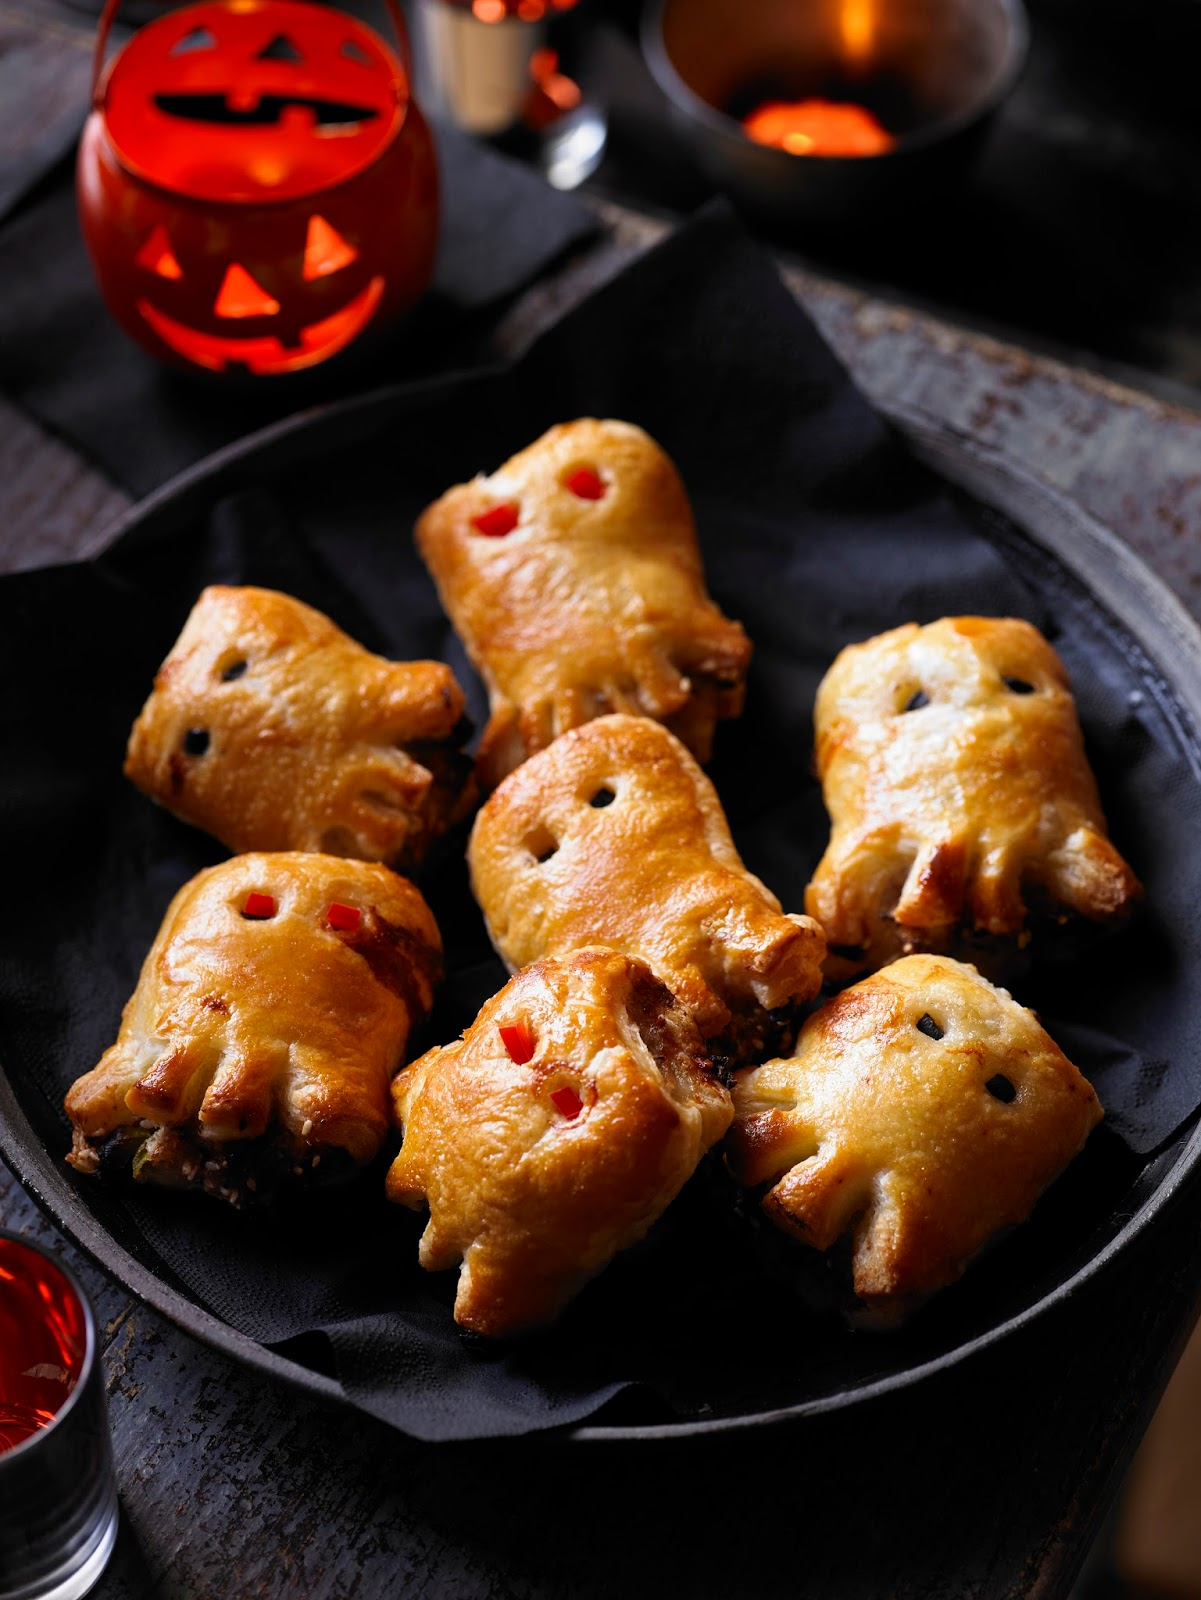 Halloween entertaining doesn't have to be the stuff of nightmares. With a few easy techniques in your repertoire — from fake blood to gooey brains, you can whisk up spectacularly spooky Halloween party food without breaking a sweat.